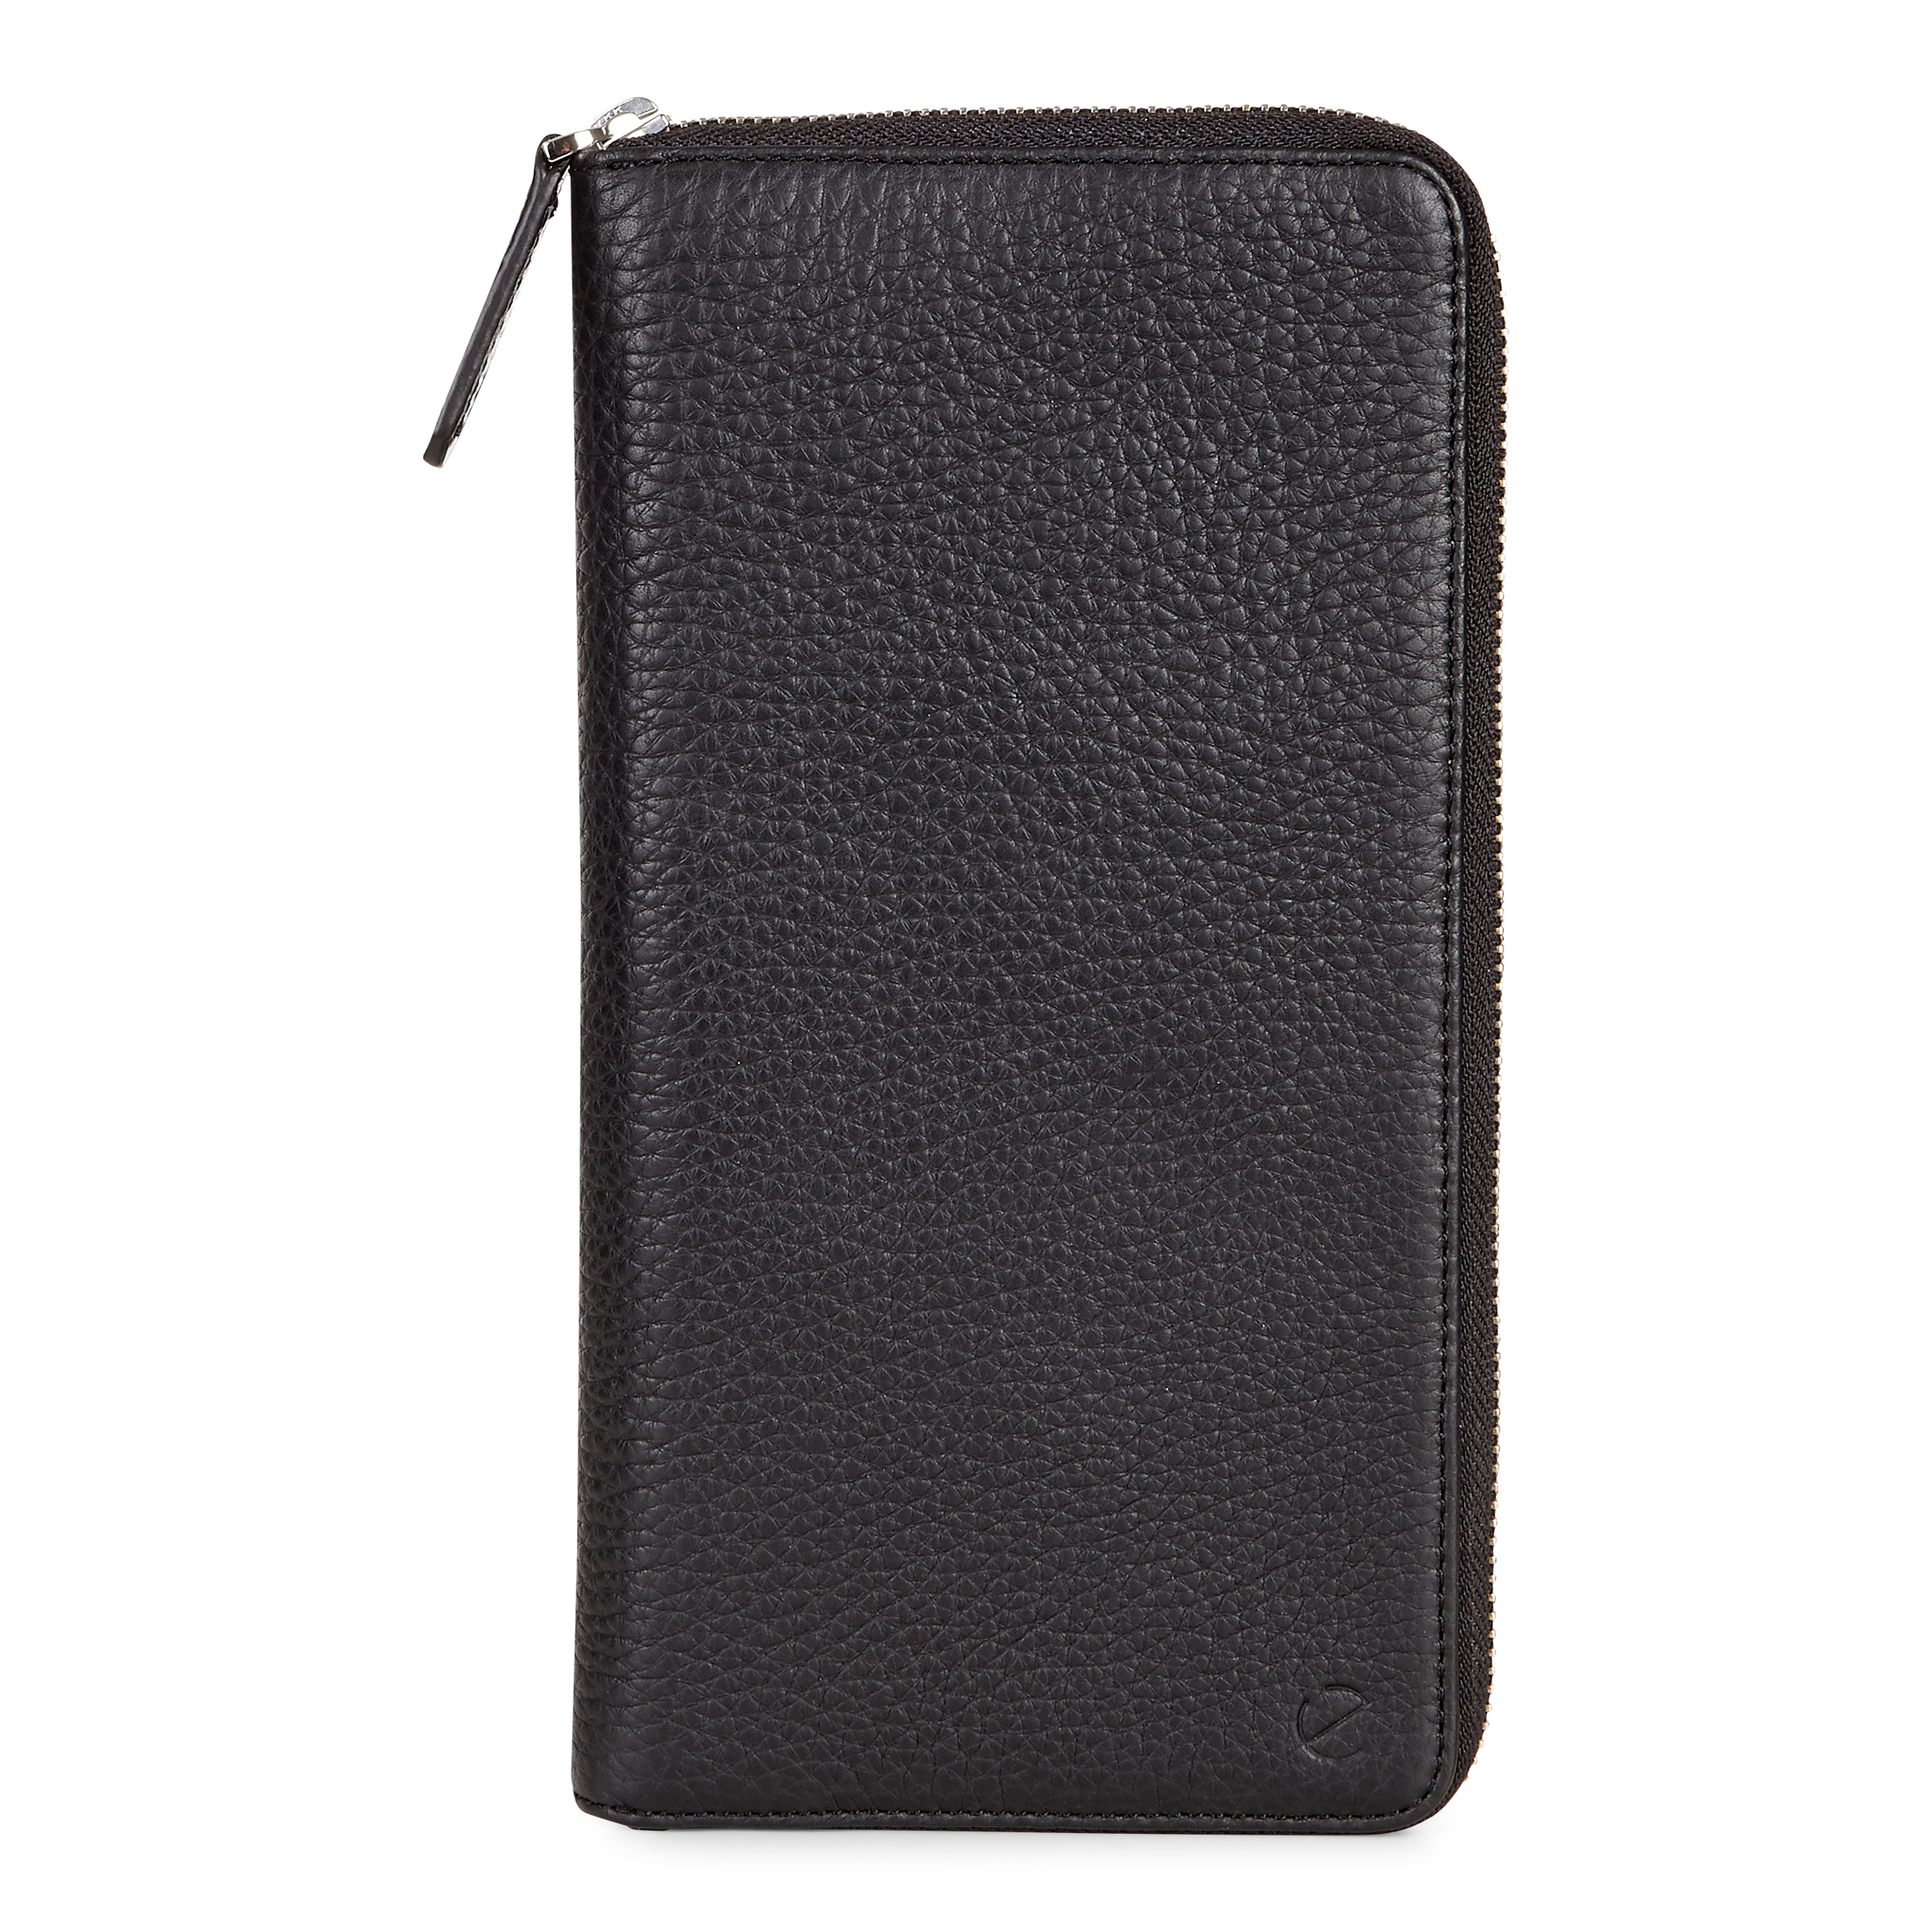 Image of ECCO Arne Rfid Travel Wallet